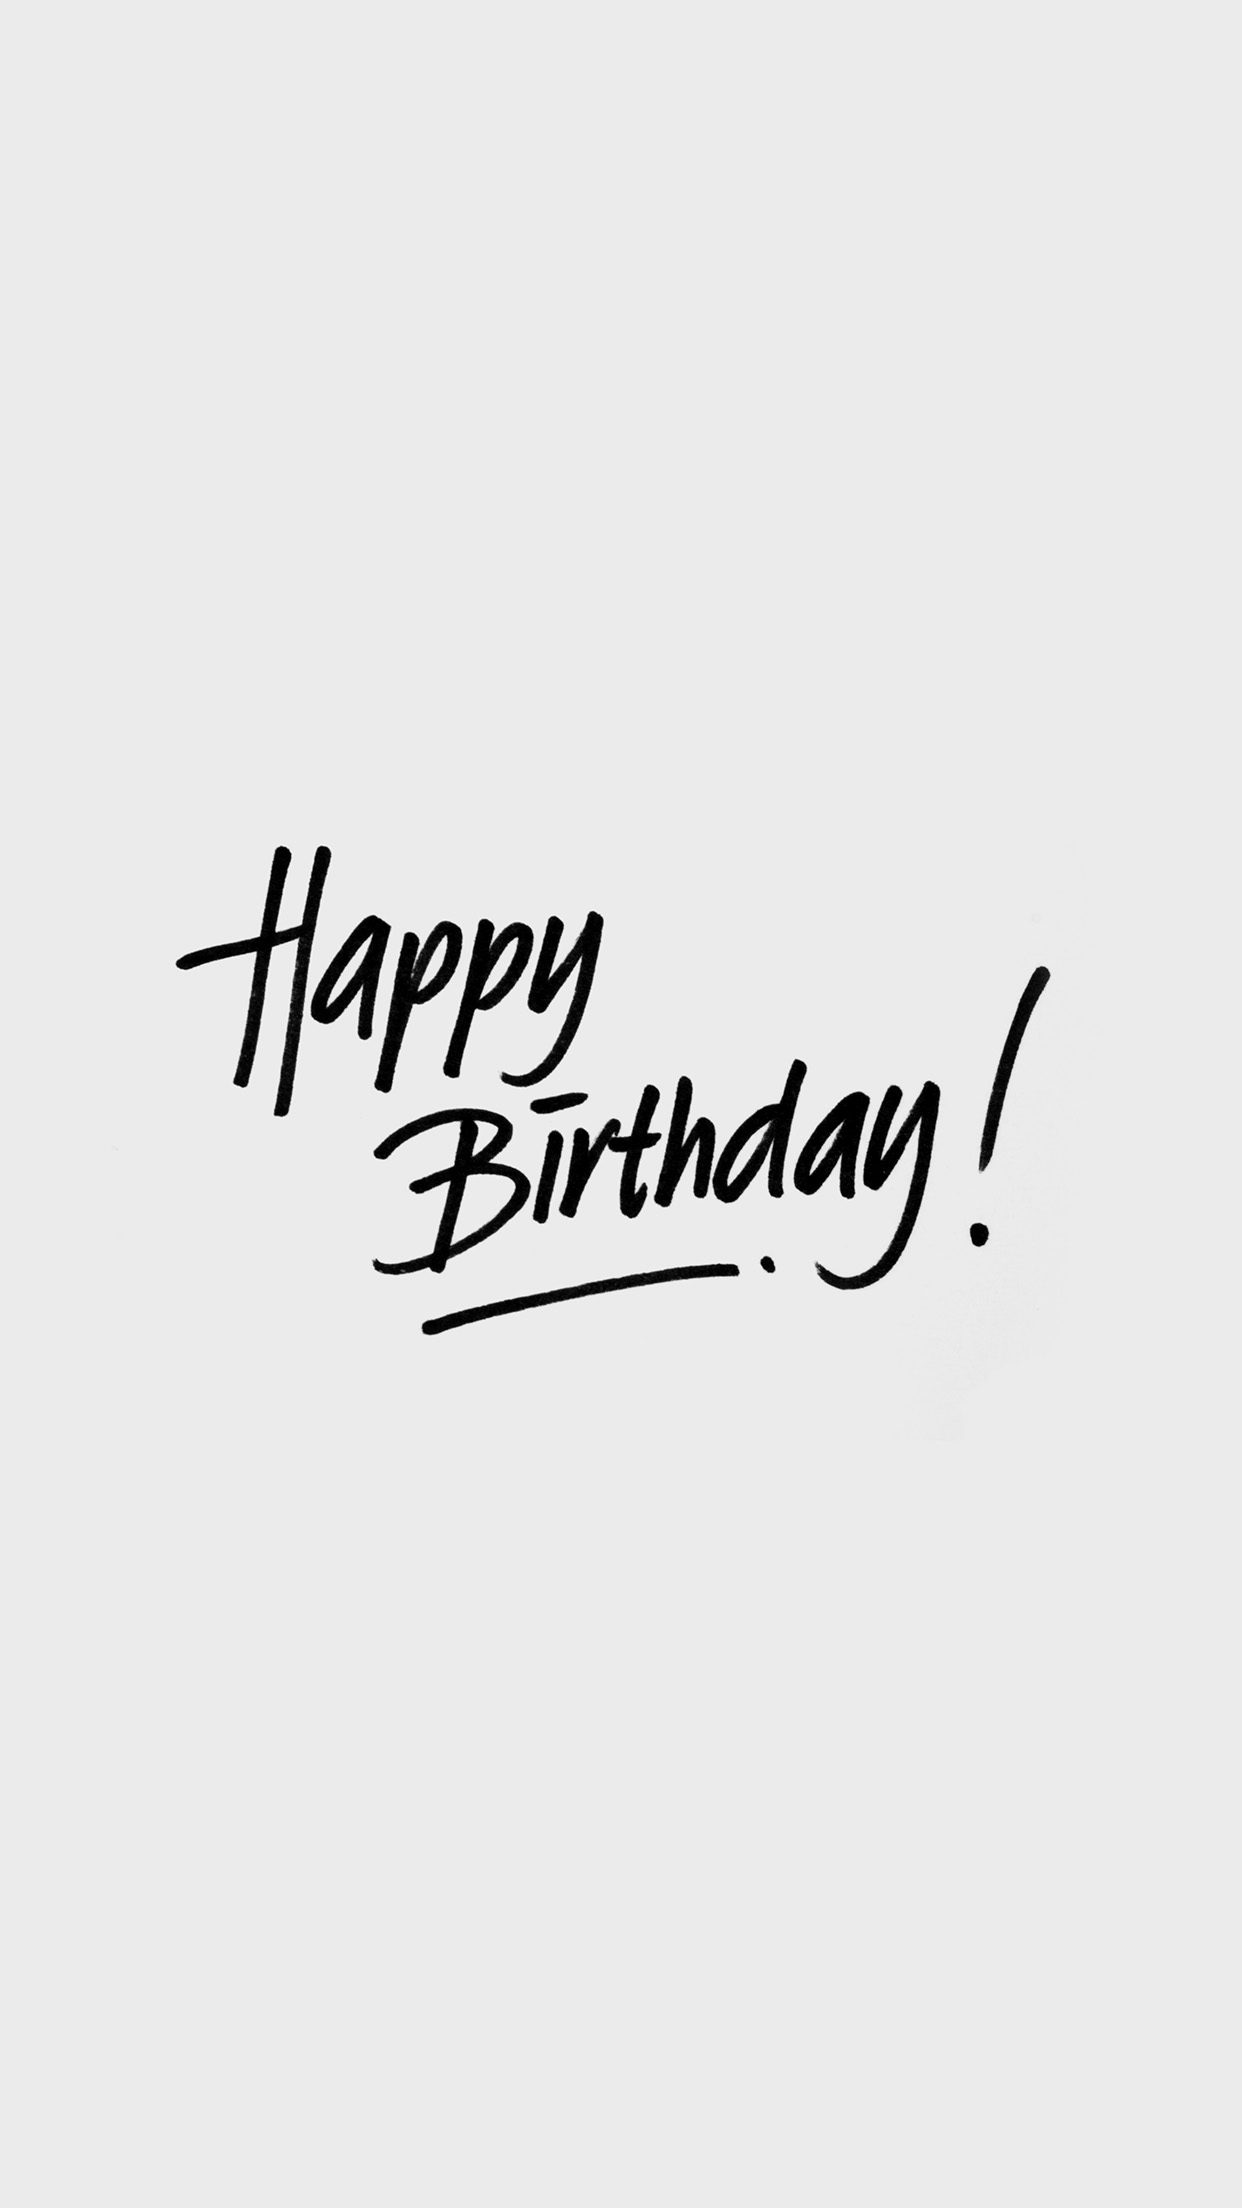 Wallpaper Writing Iphone7papers Iphone7 Wallpaper Ap55 Happy Birthday White